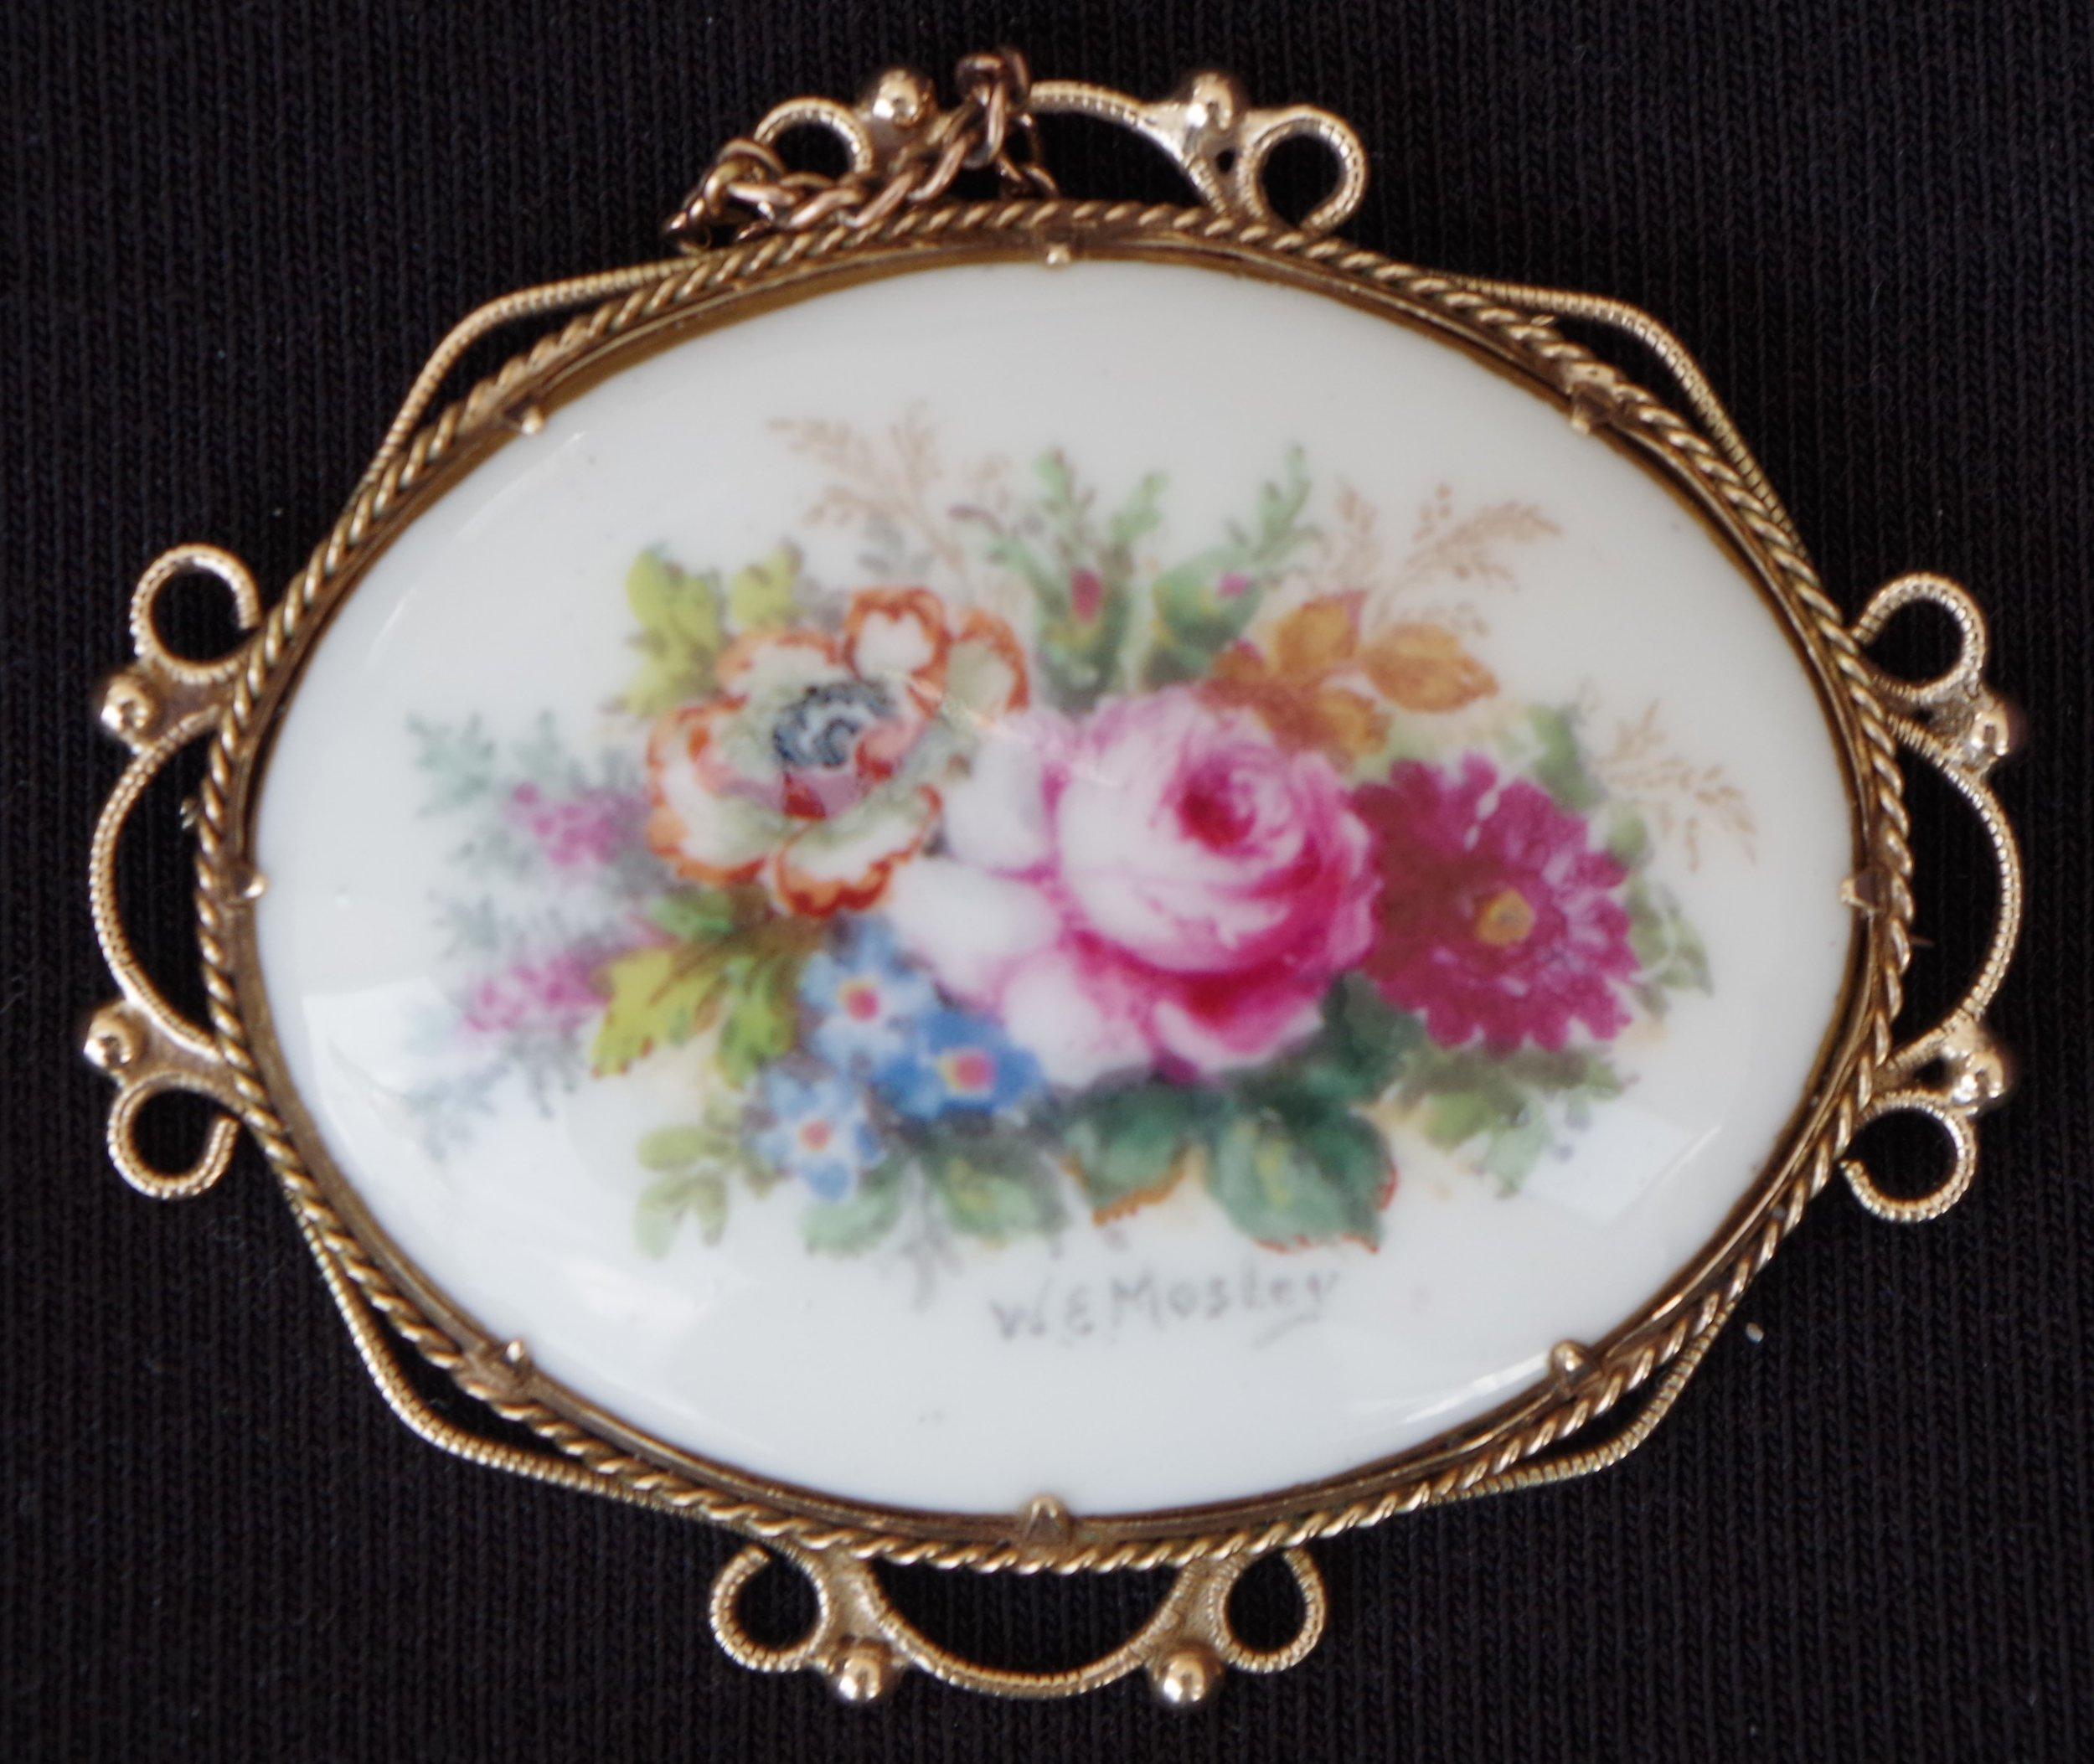 royal-crown-derby-brooch-mosley